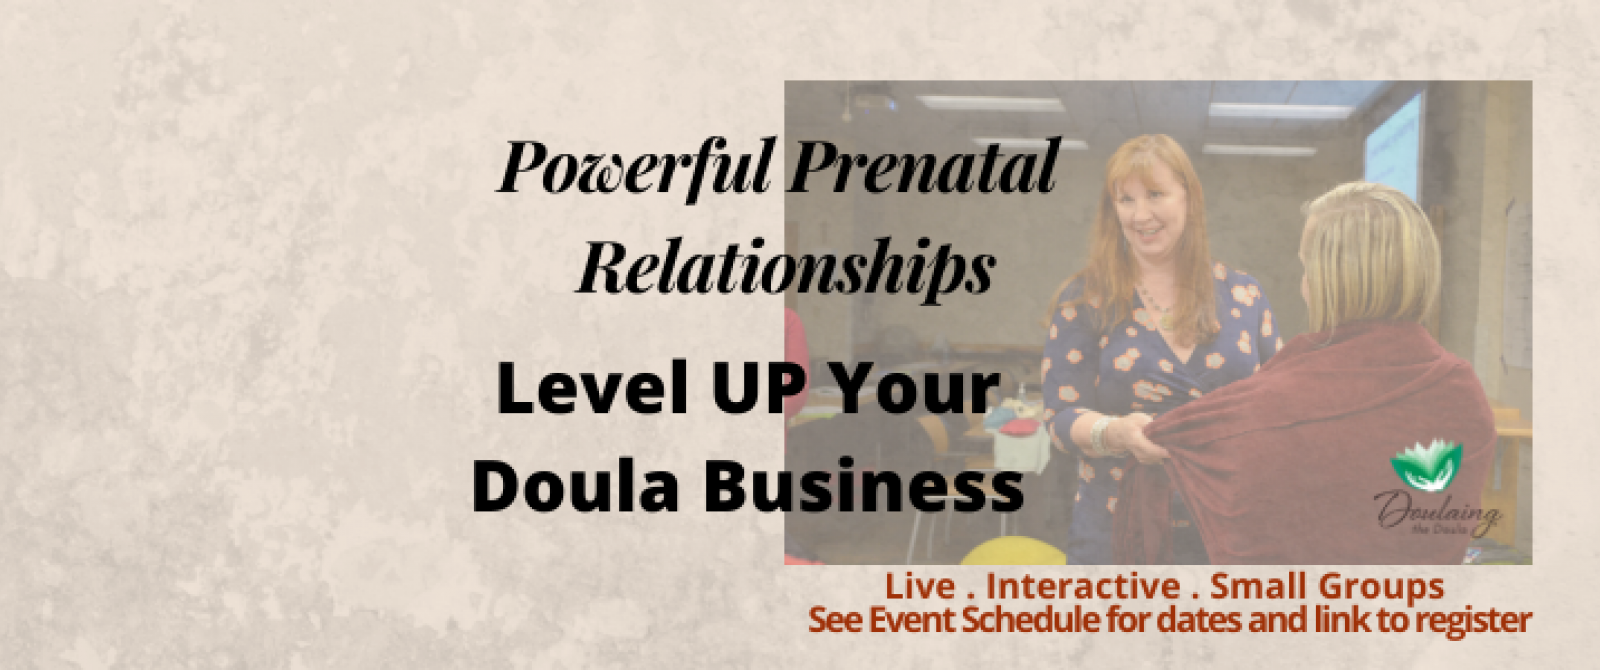 Powerful Prenatal Relationships and Level up Your Doula Business header with picture of Amy and woman - png